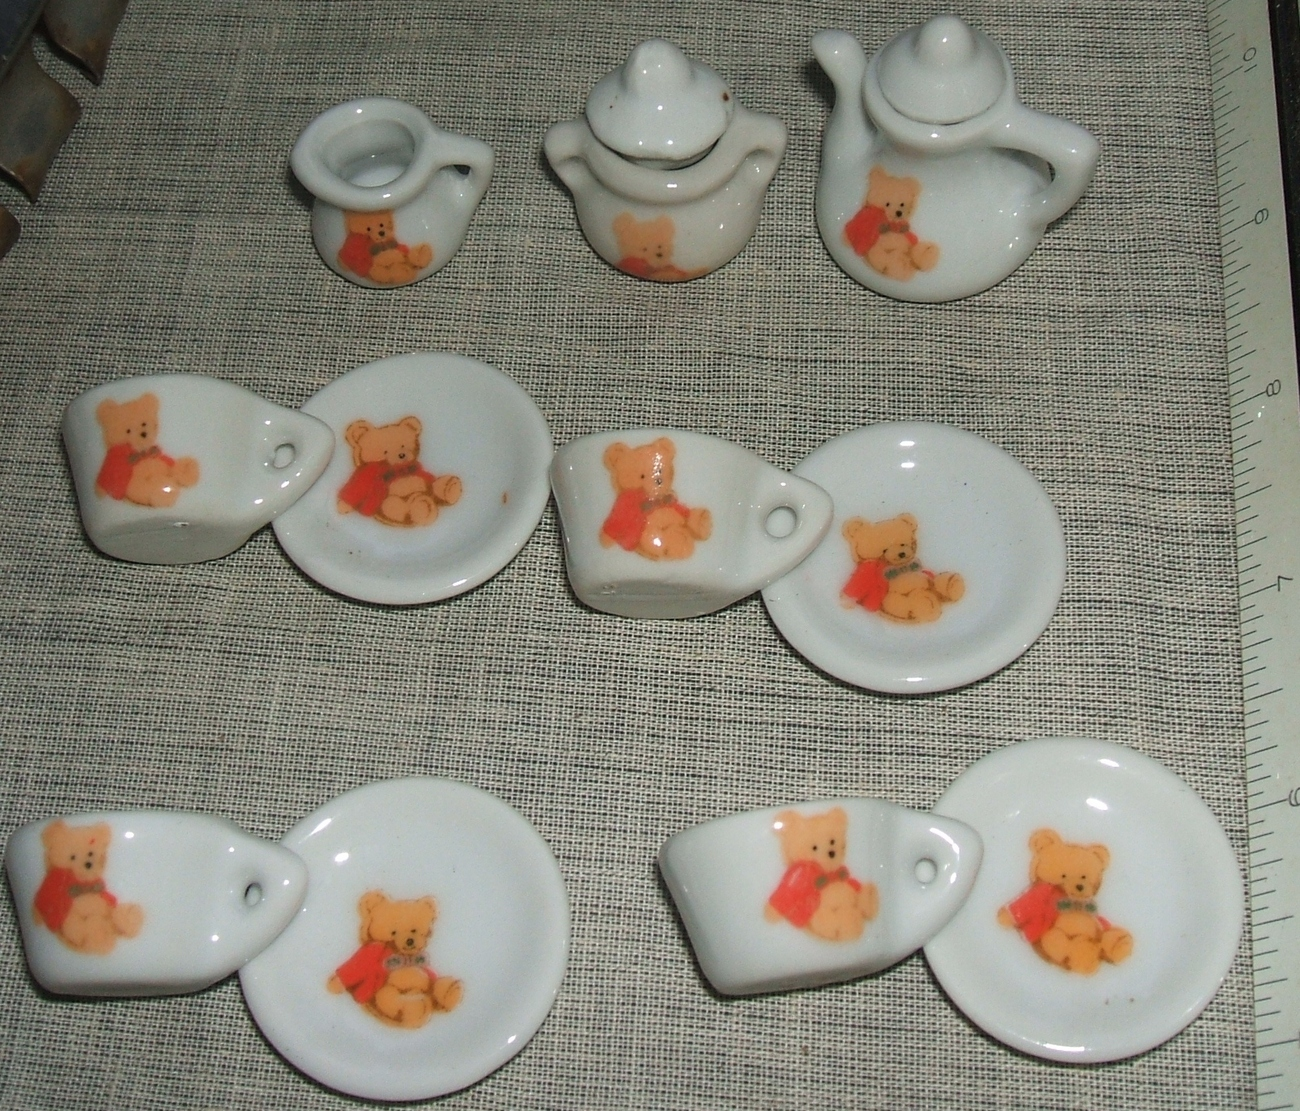 Winnie_the_pooh_miniature_tea_party_pretend_play_set__2_